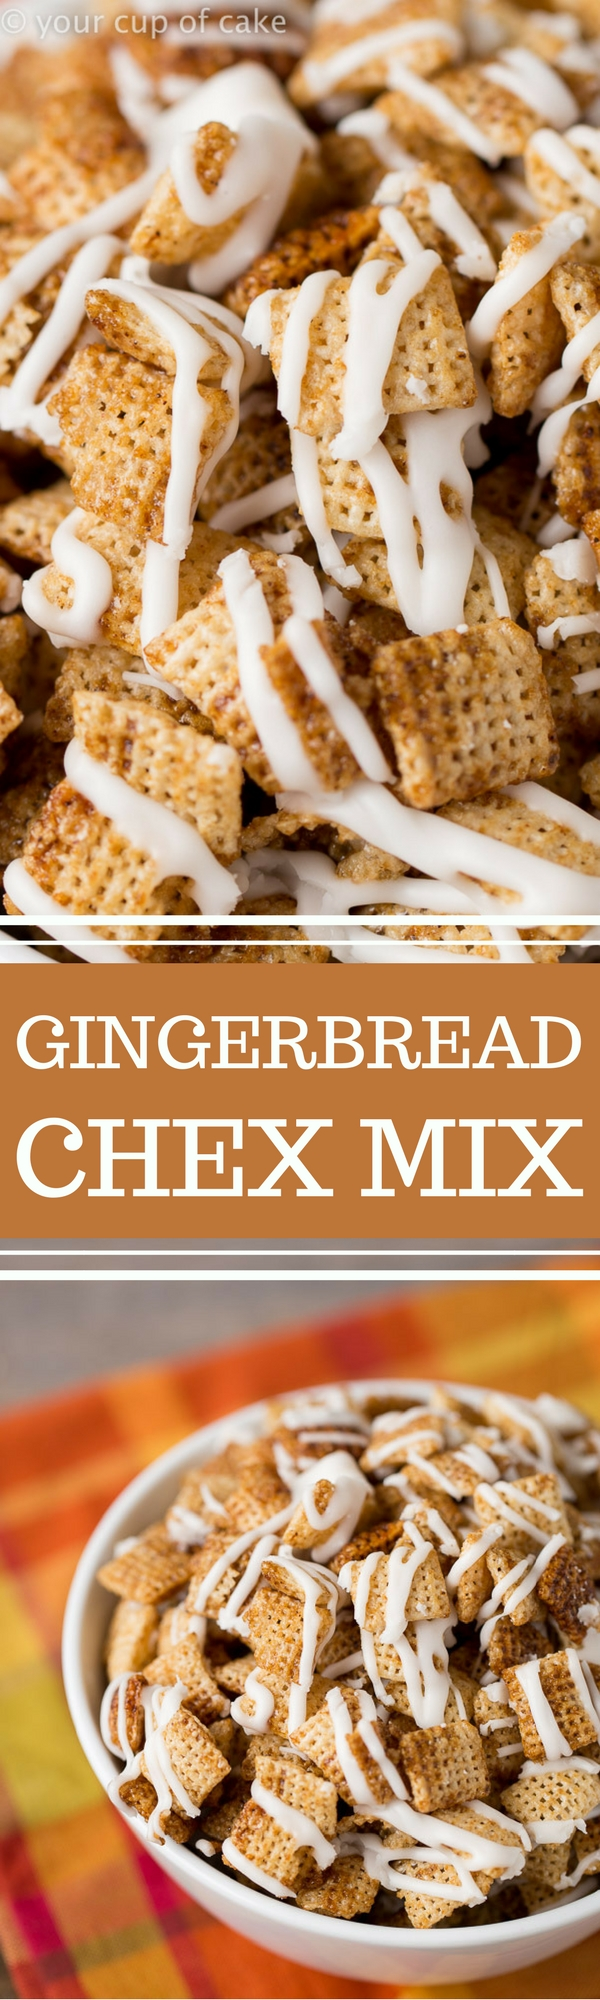 Gingerbread Chex Mix for Christmas munching!